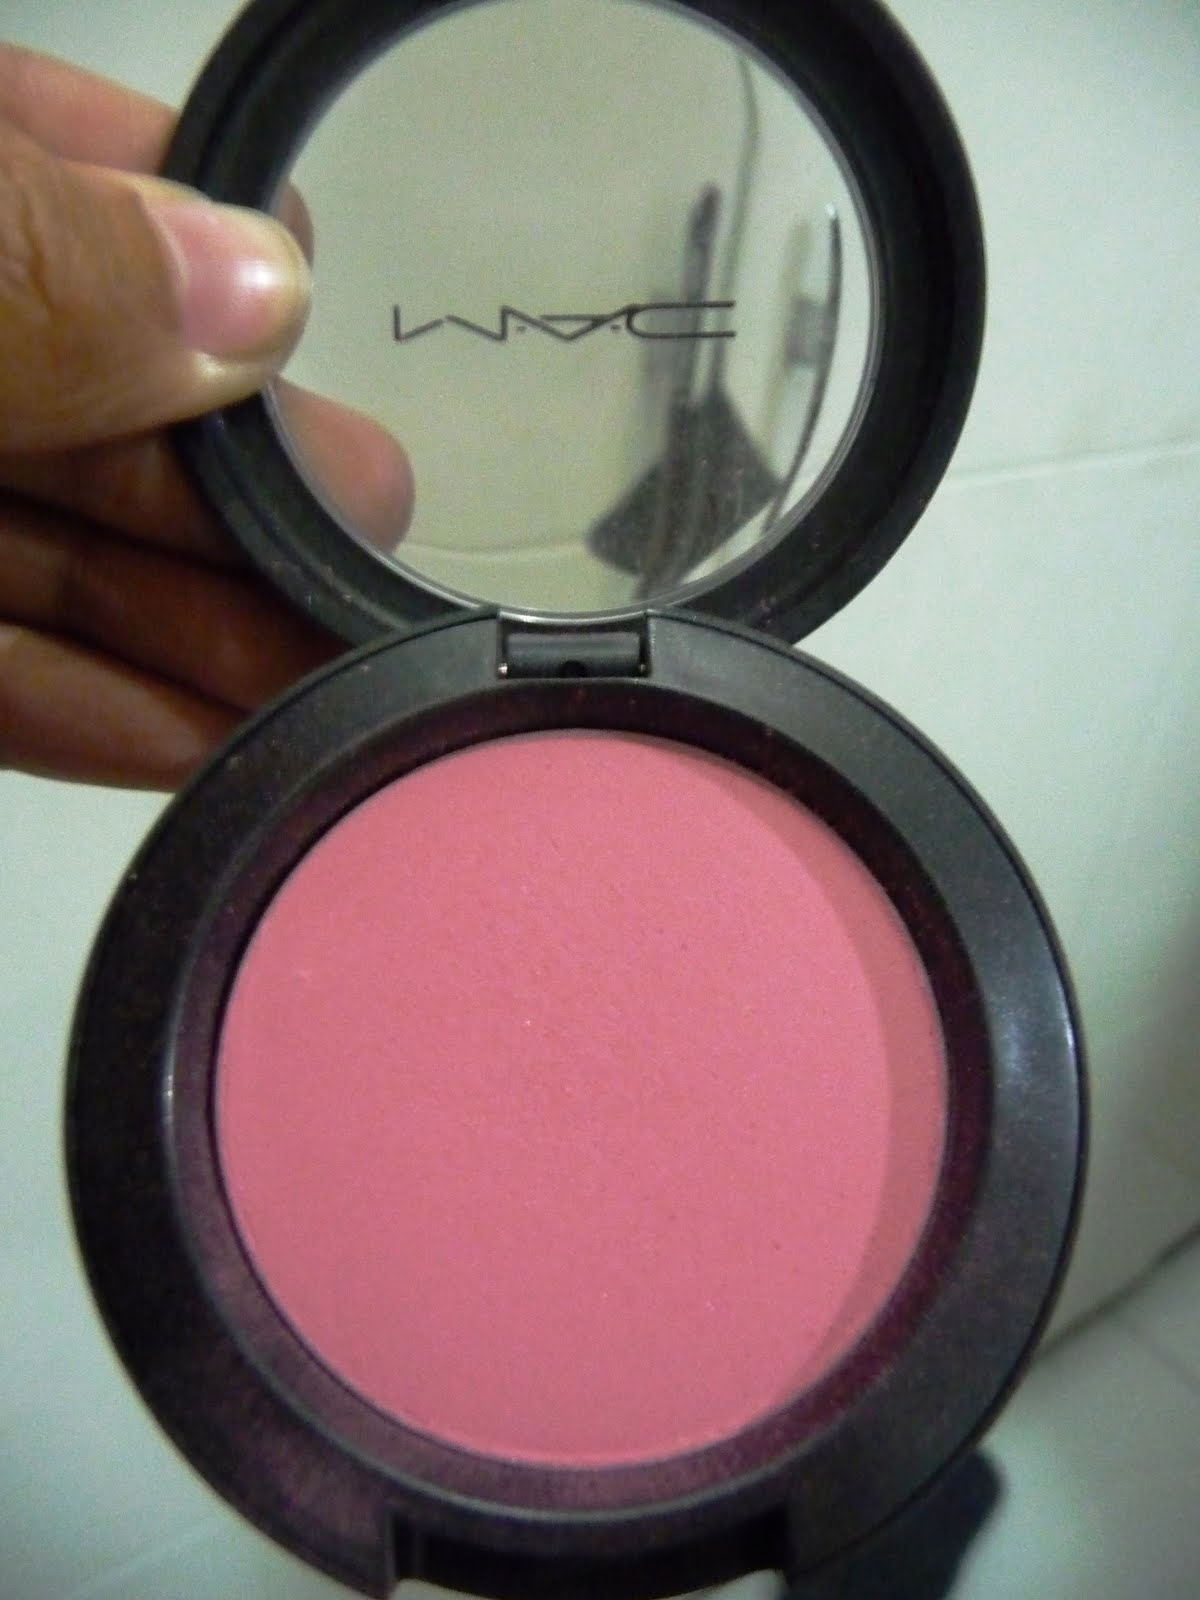 blushbaby: MAC Sheertone Blush in Pinch O' Peach